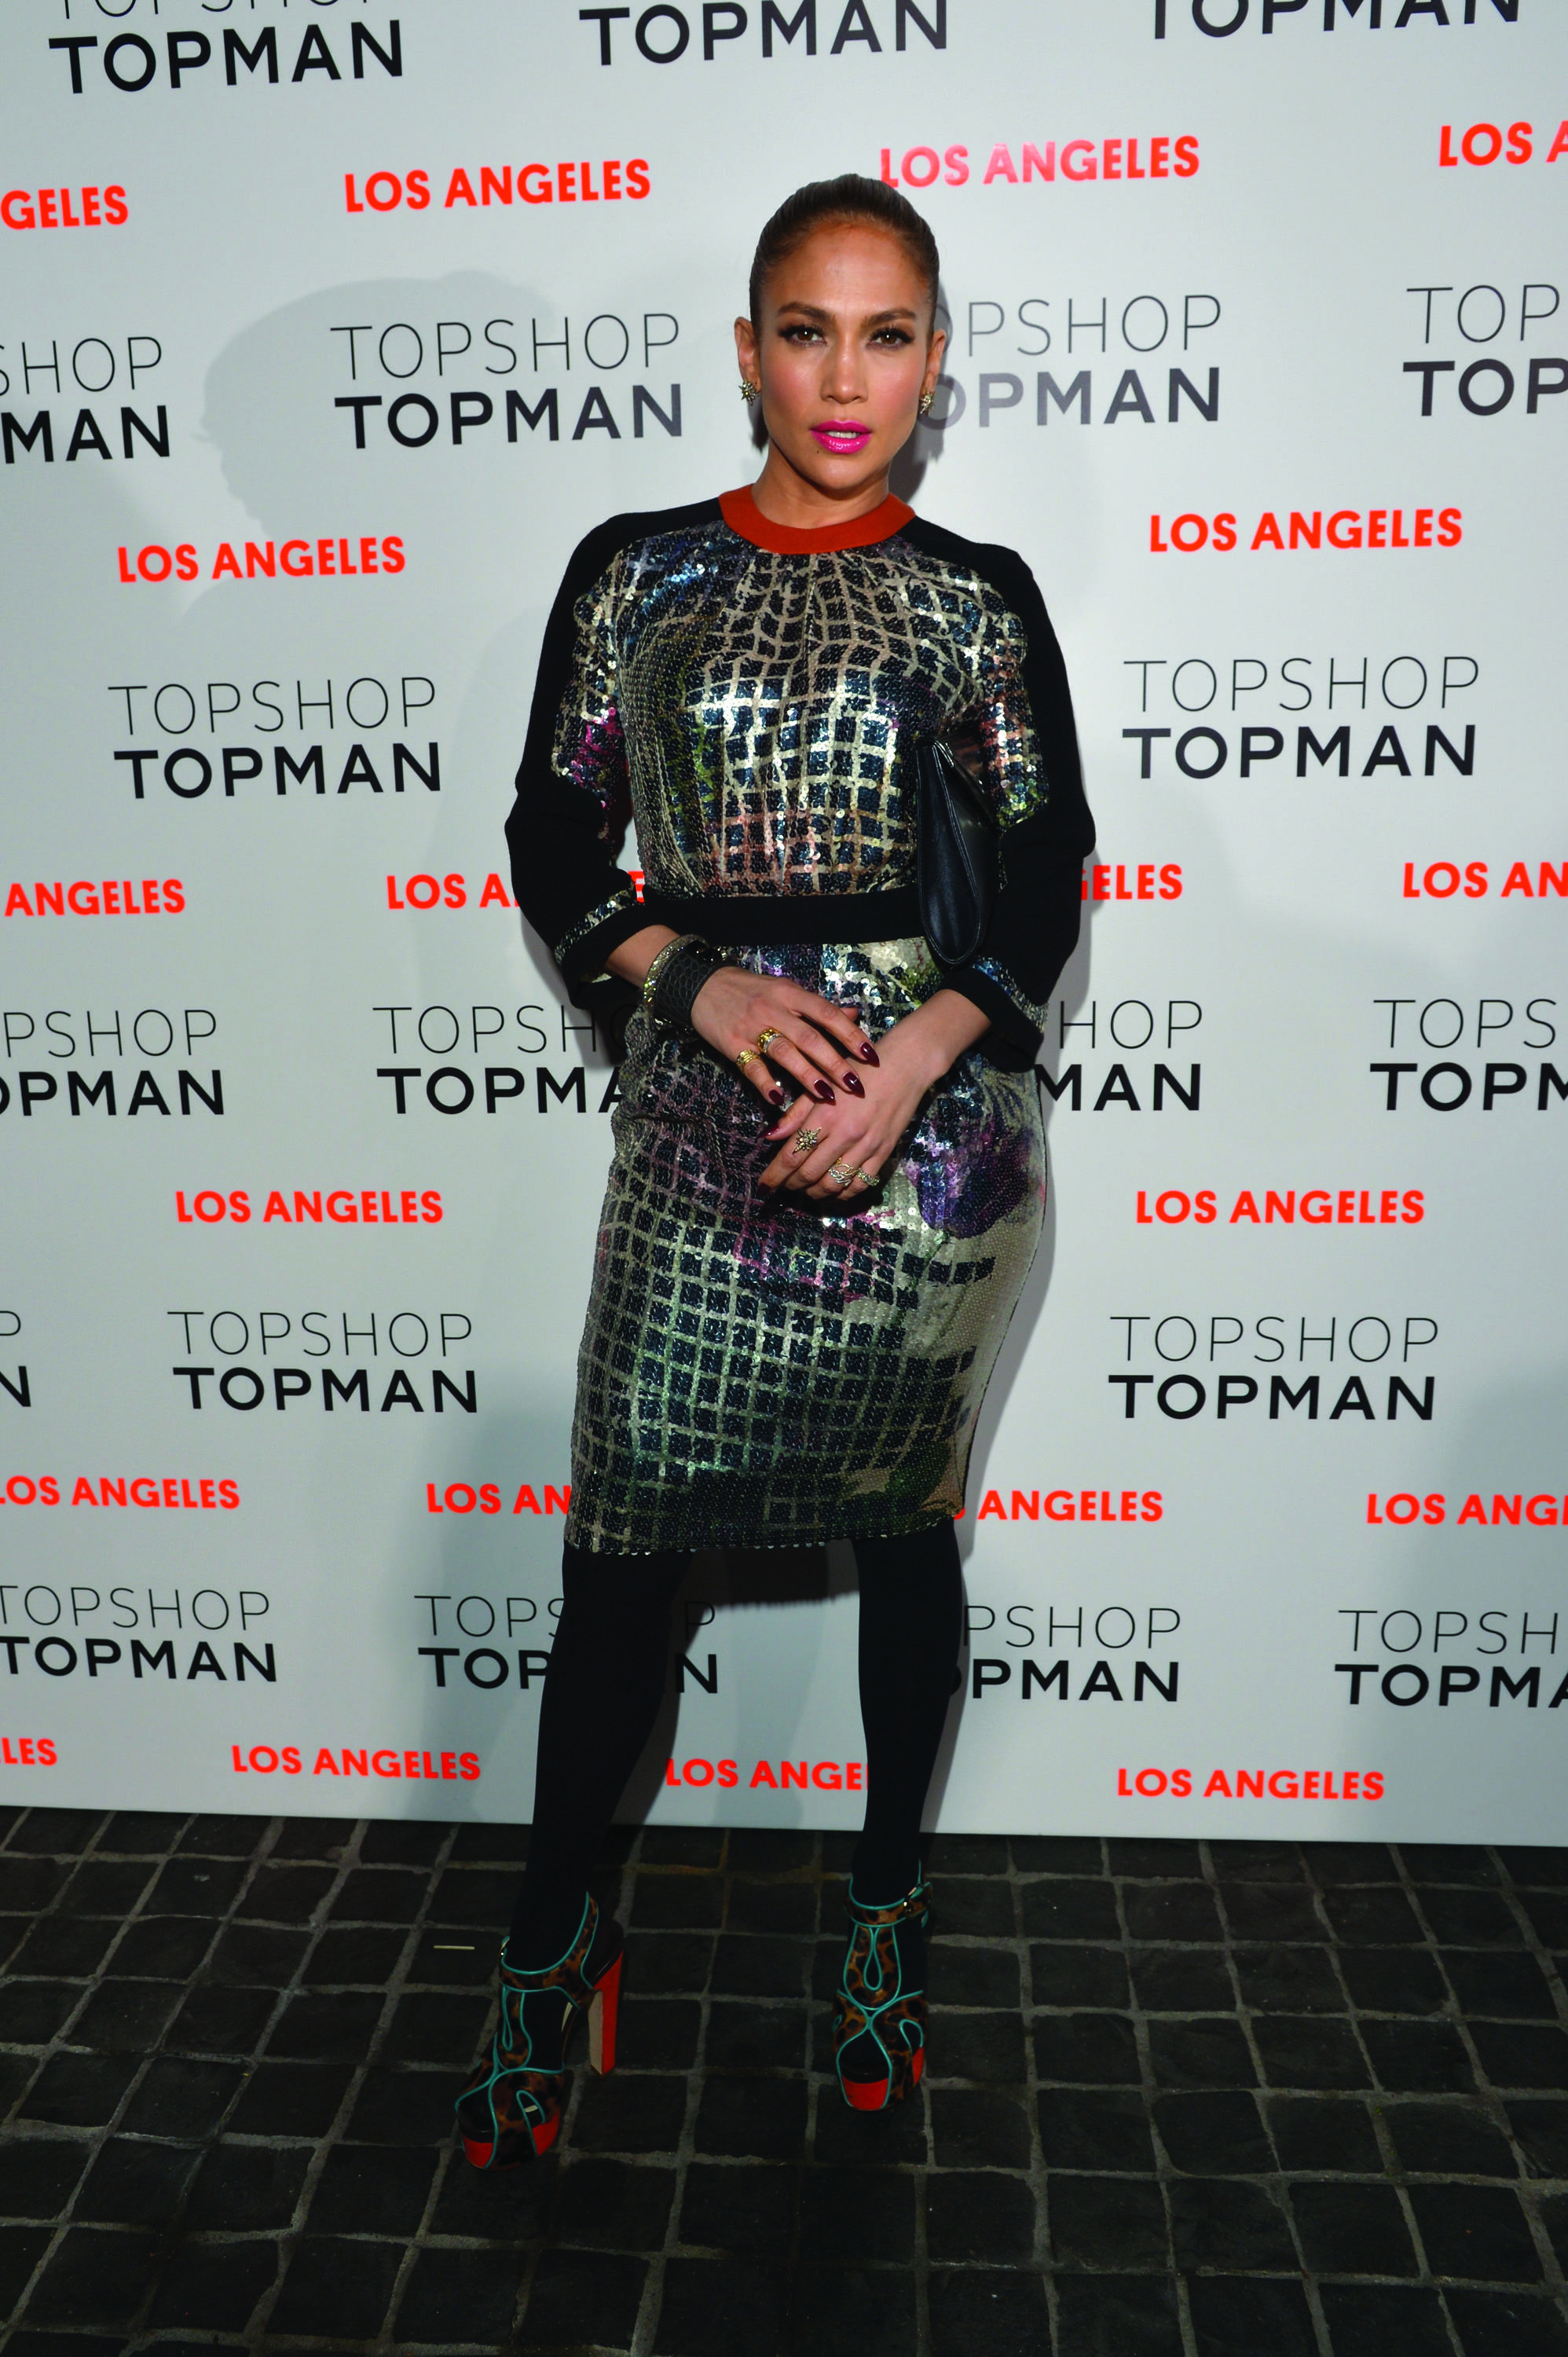 Topshop Topman LA Opening Party - Red Carpet